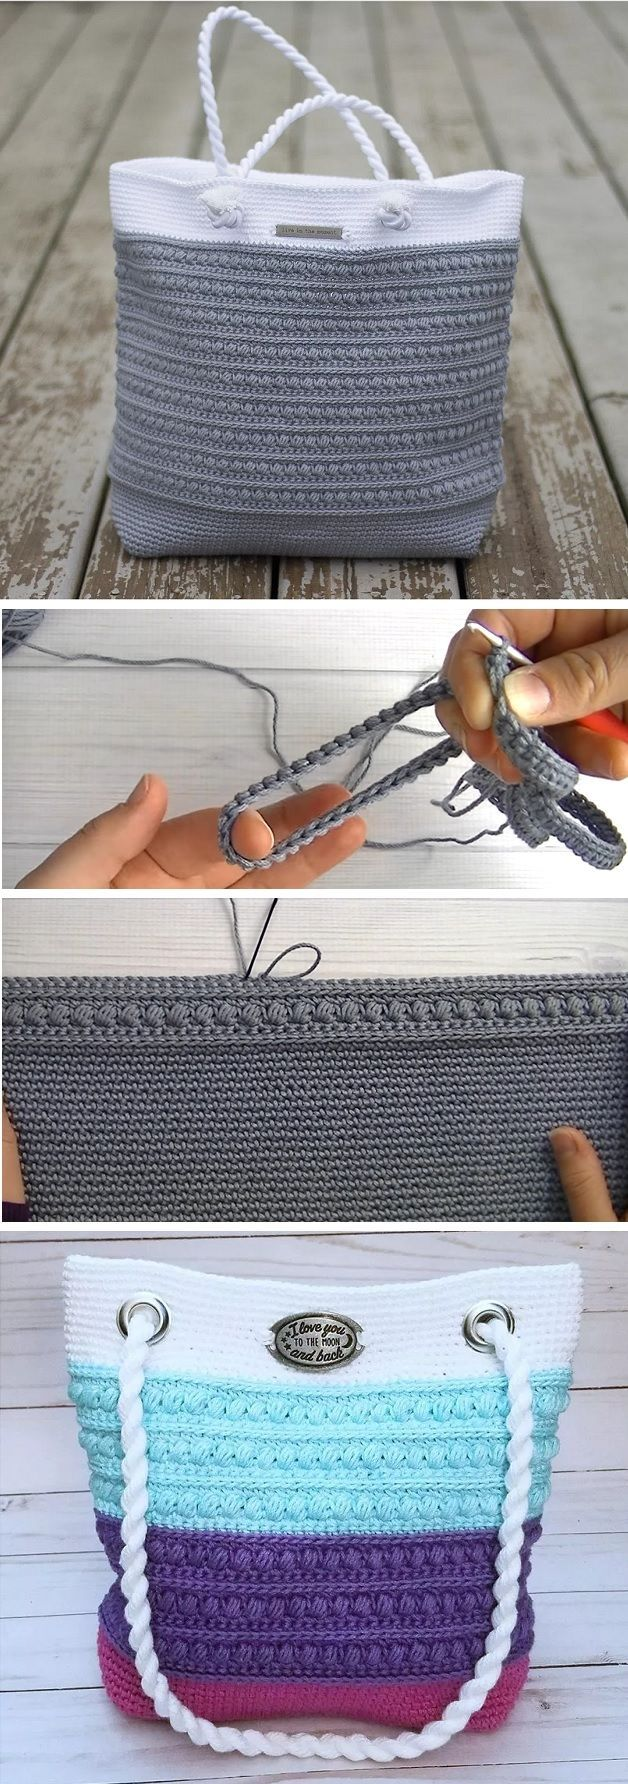 Crochet a Pretty Shoulder Bag - Design Peak #purses